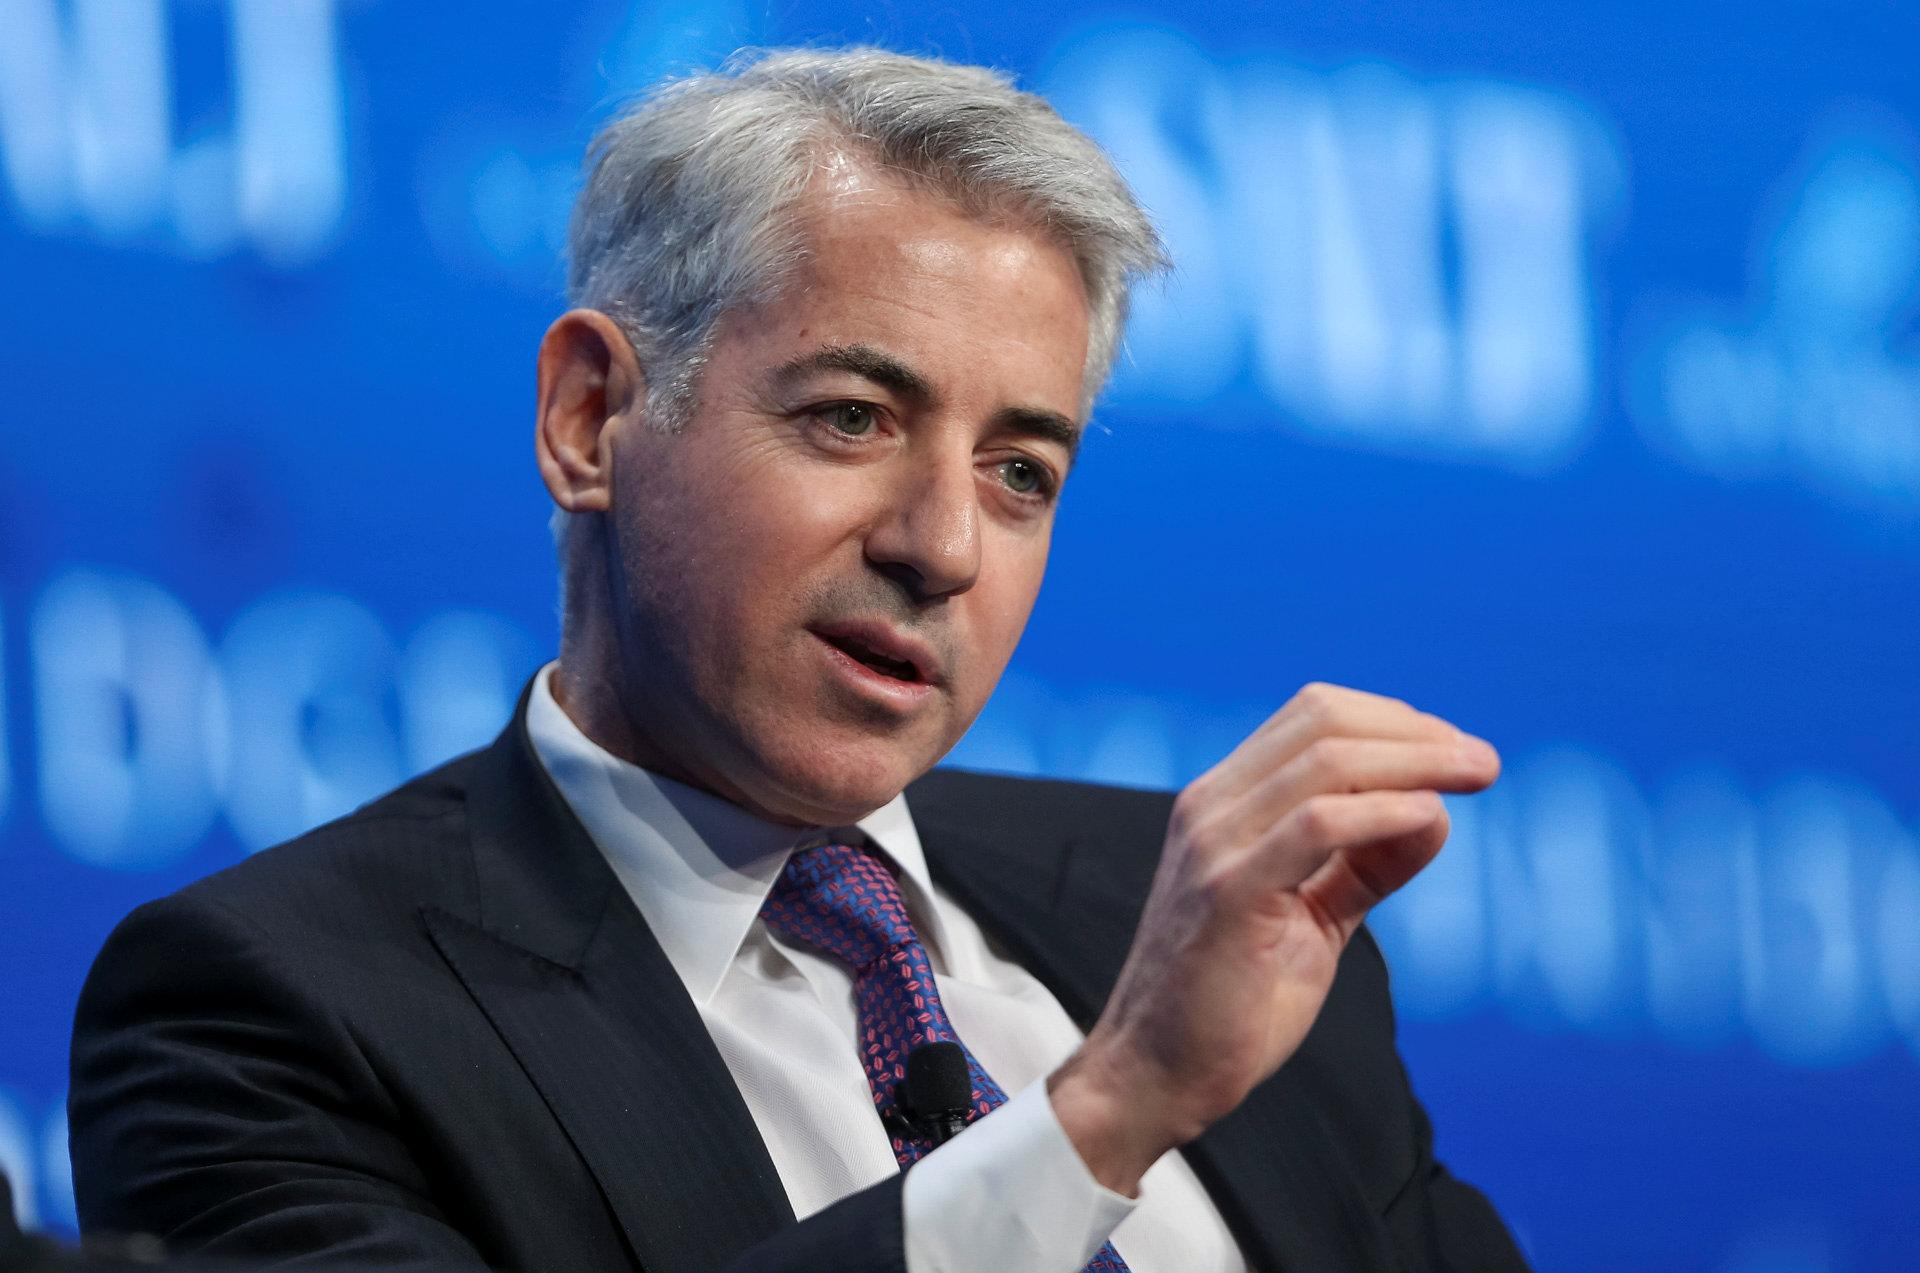 Bill Ackman, CEO at Pershing Square Capital Management, speaks during the SALT conference in Las Vegas, Nevada, U.S. May 18, 2017. REUTERS/Richard Brian